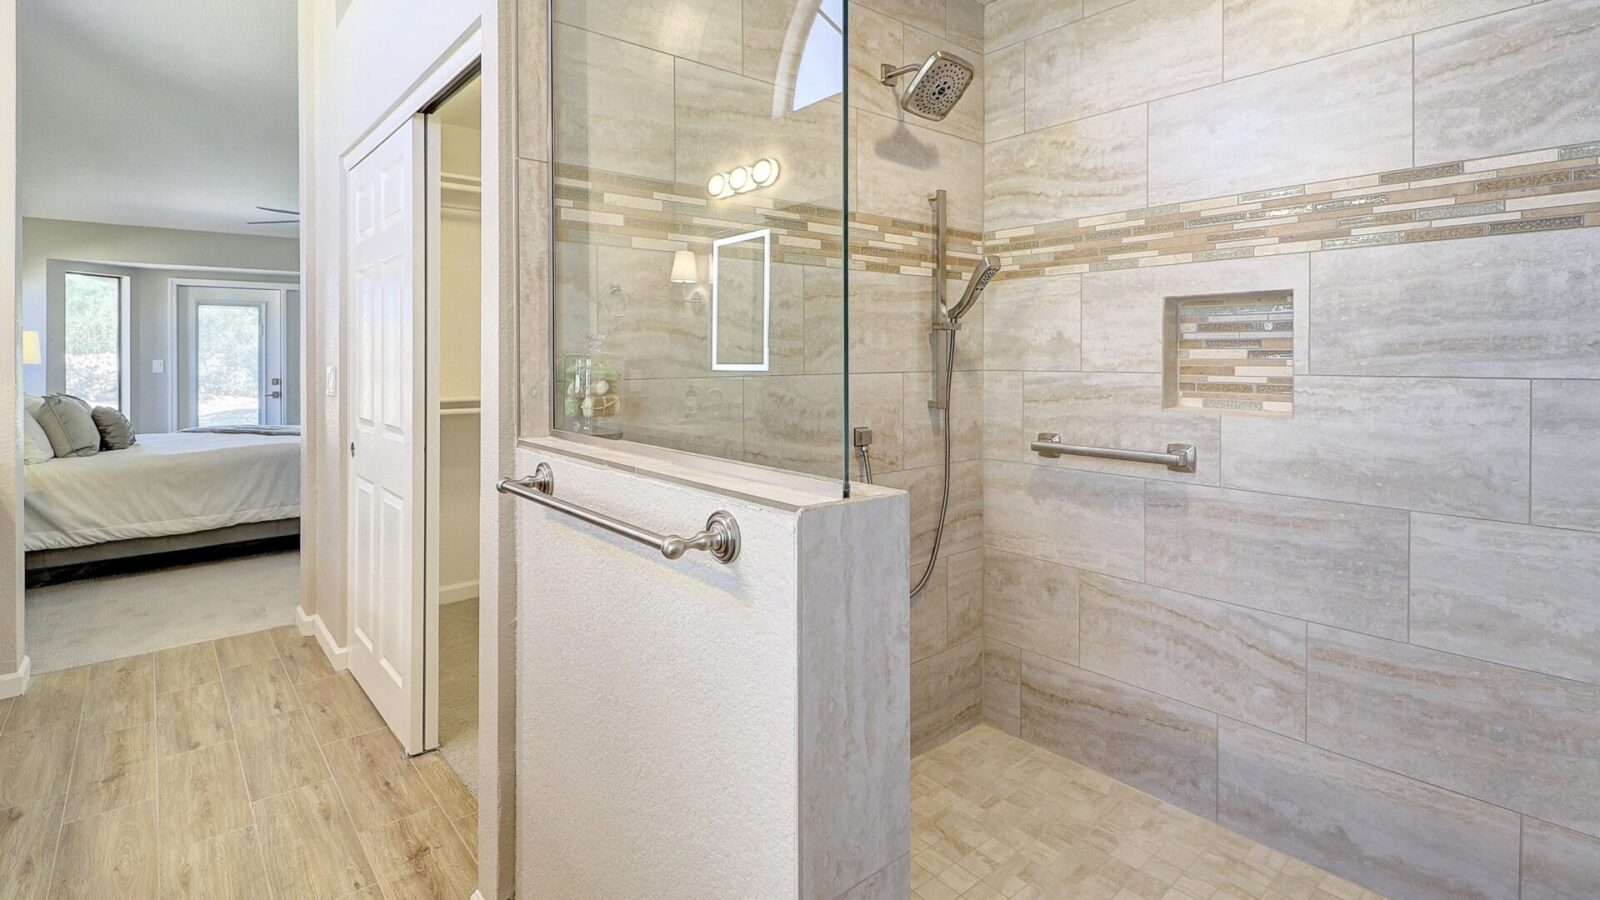 A shower room with a Peoria Classic design